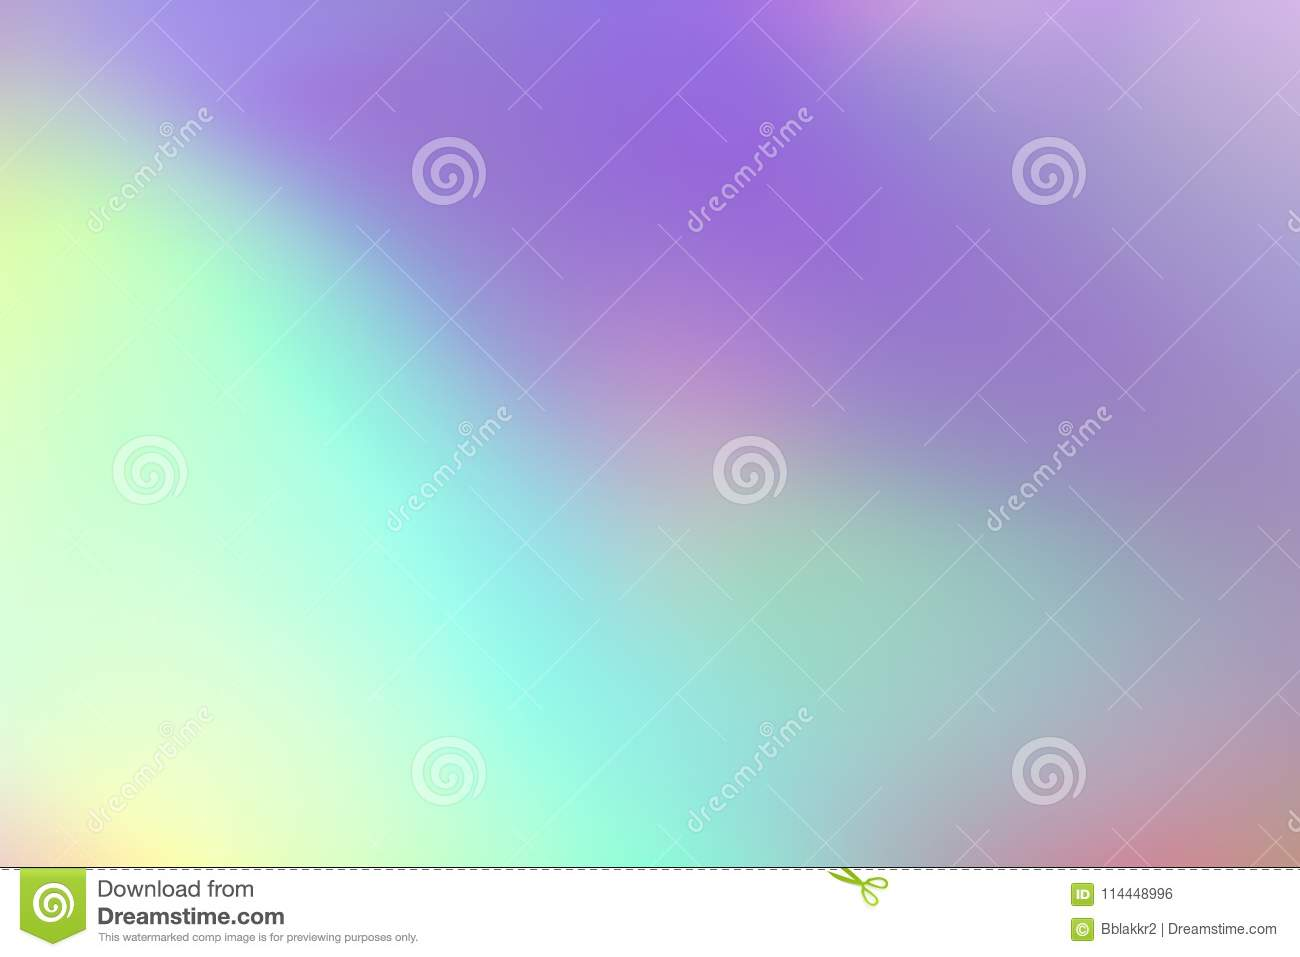 Blurry abstract pastel holographic foil background